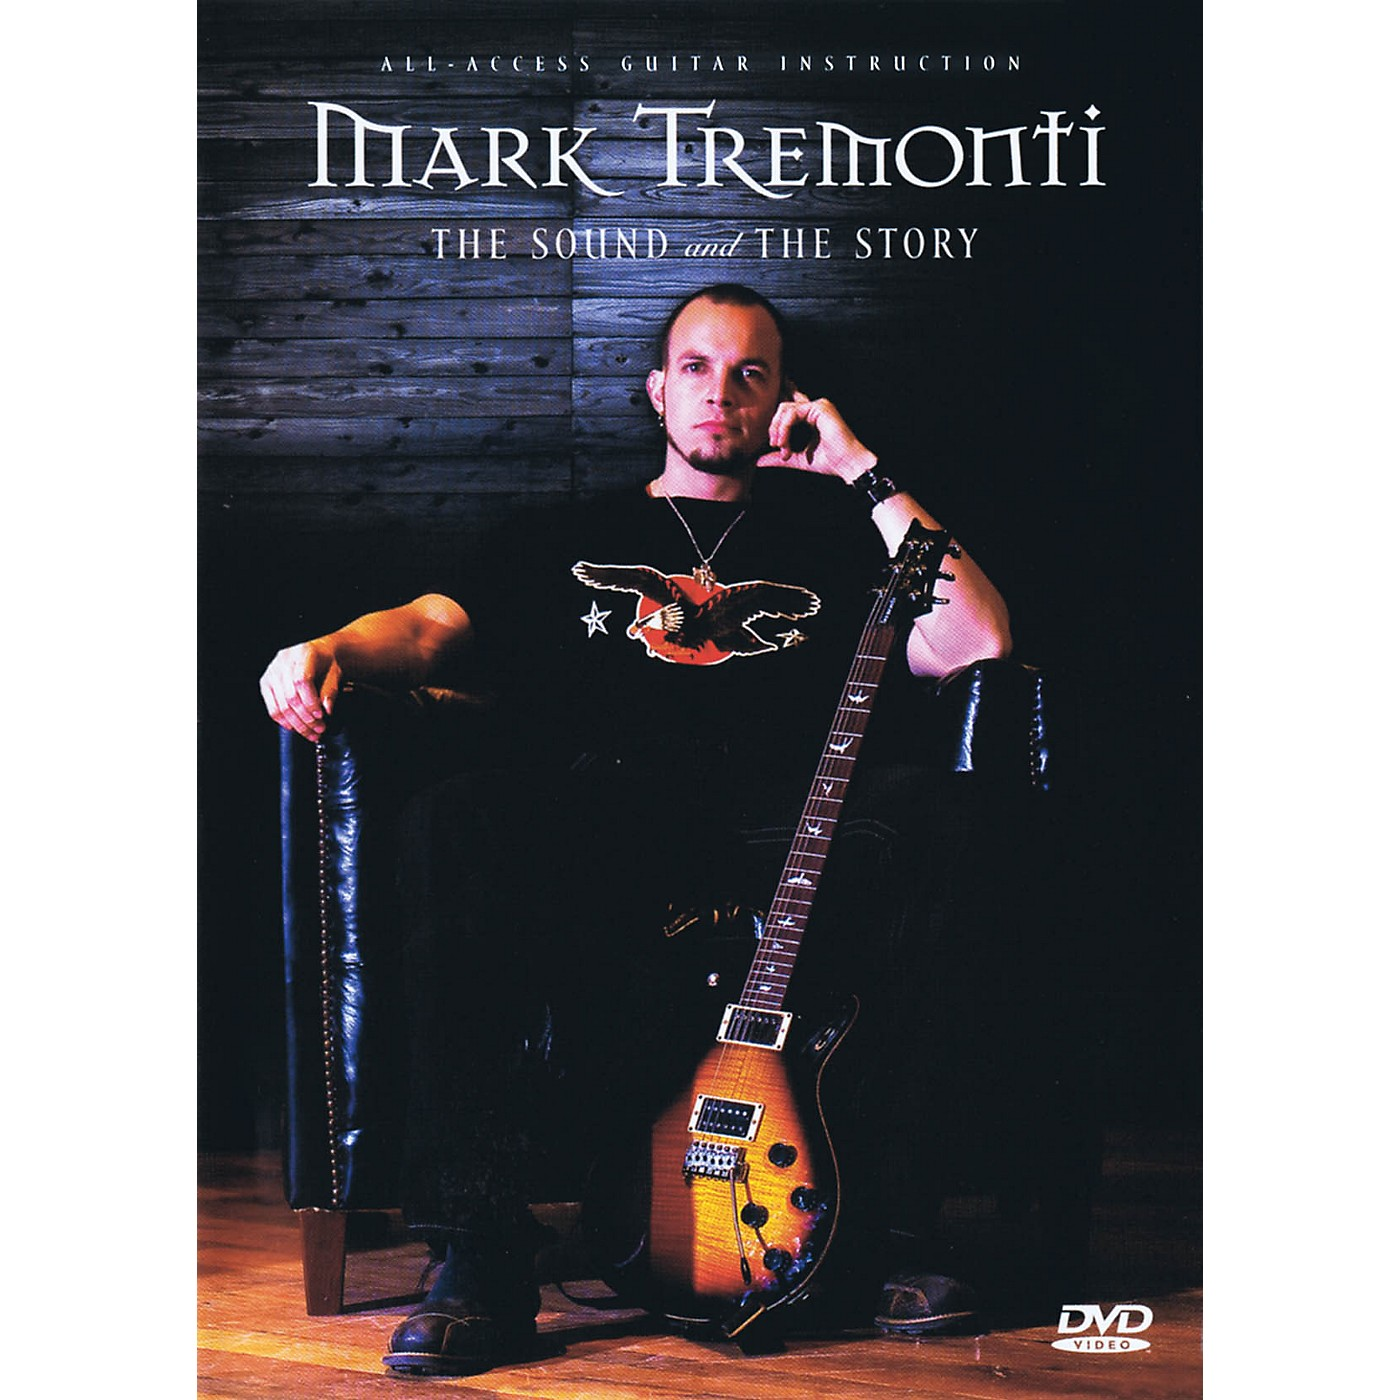 Fret12 Mark Tremonti: The Sound And The Story - Guitar Instructional/documentary Dvd (pal Ed.) Instructional/Guitar/DVD DVD by Mark Tremonti thumbnail